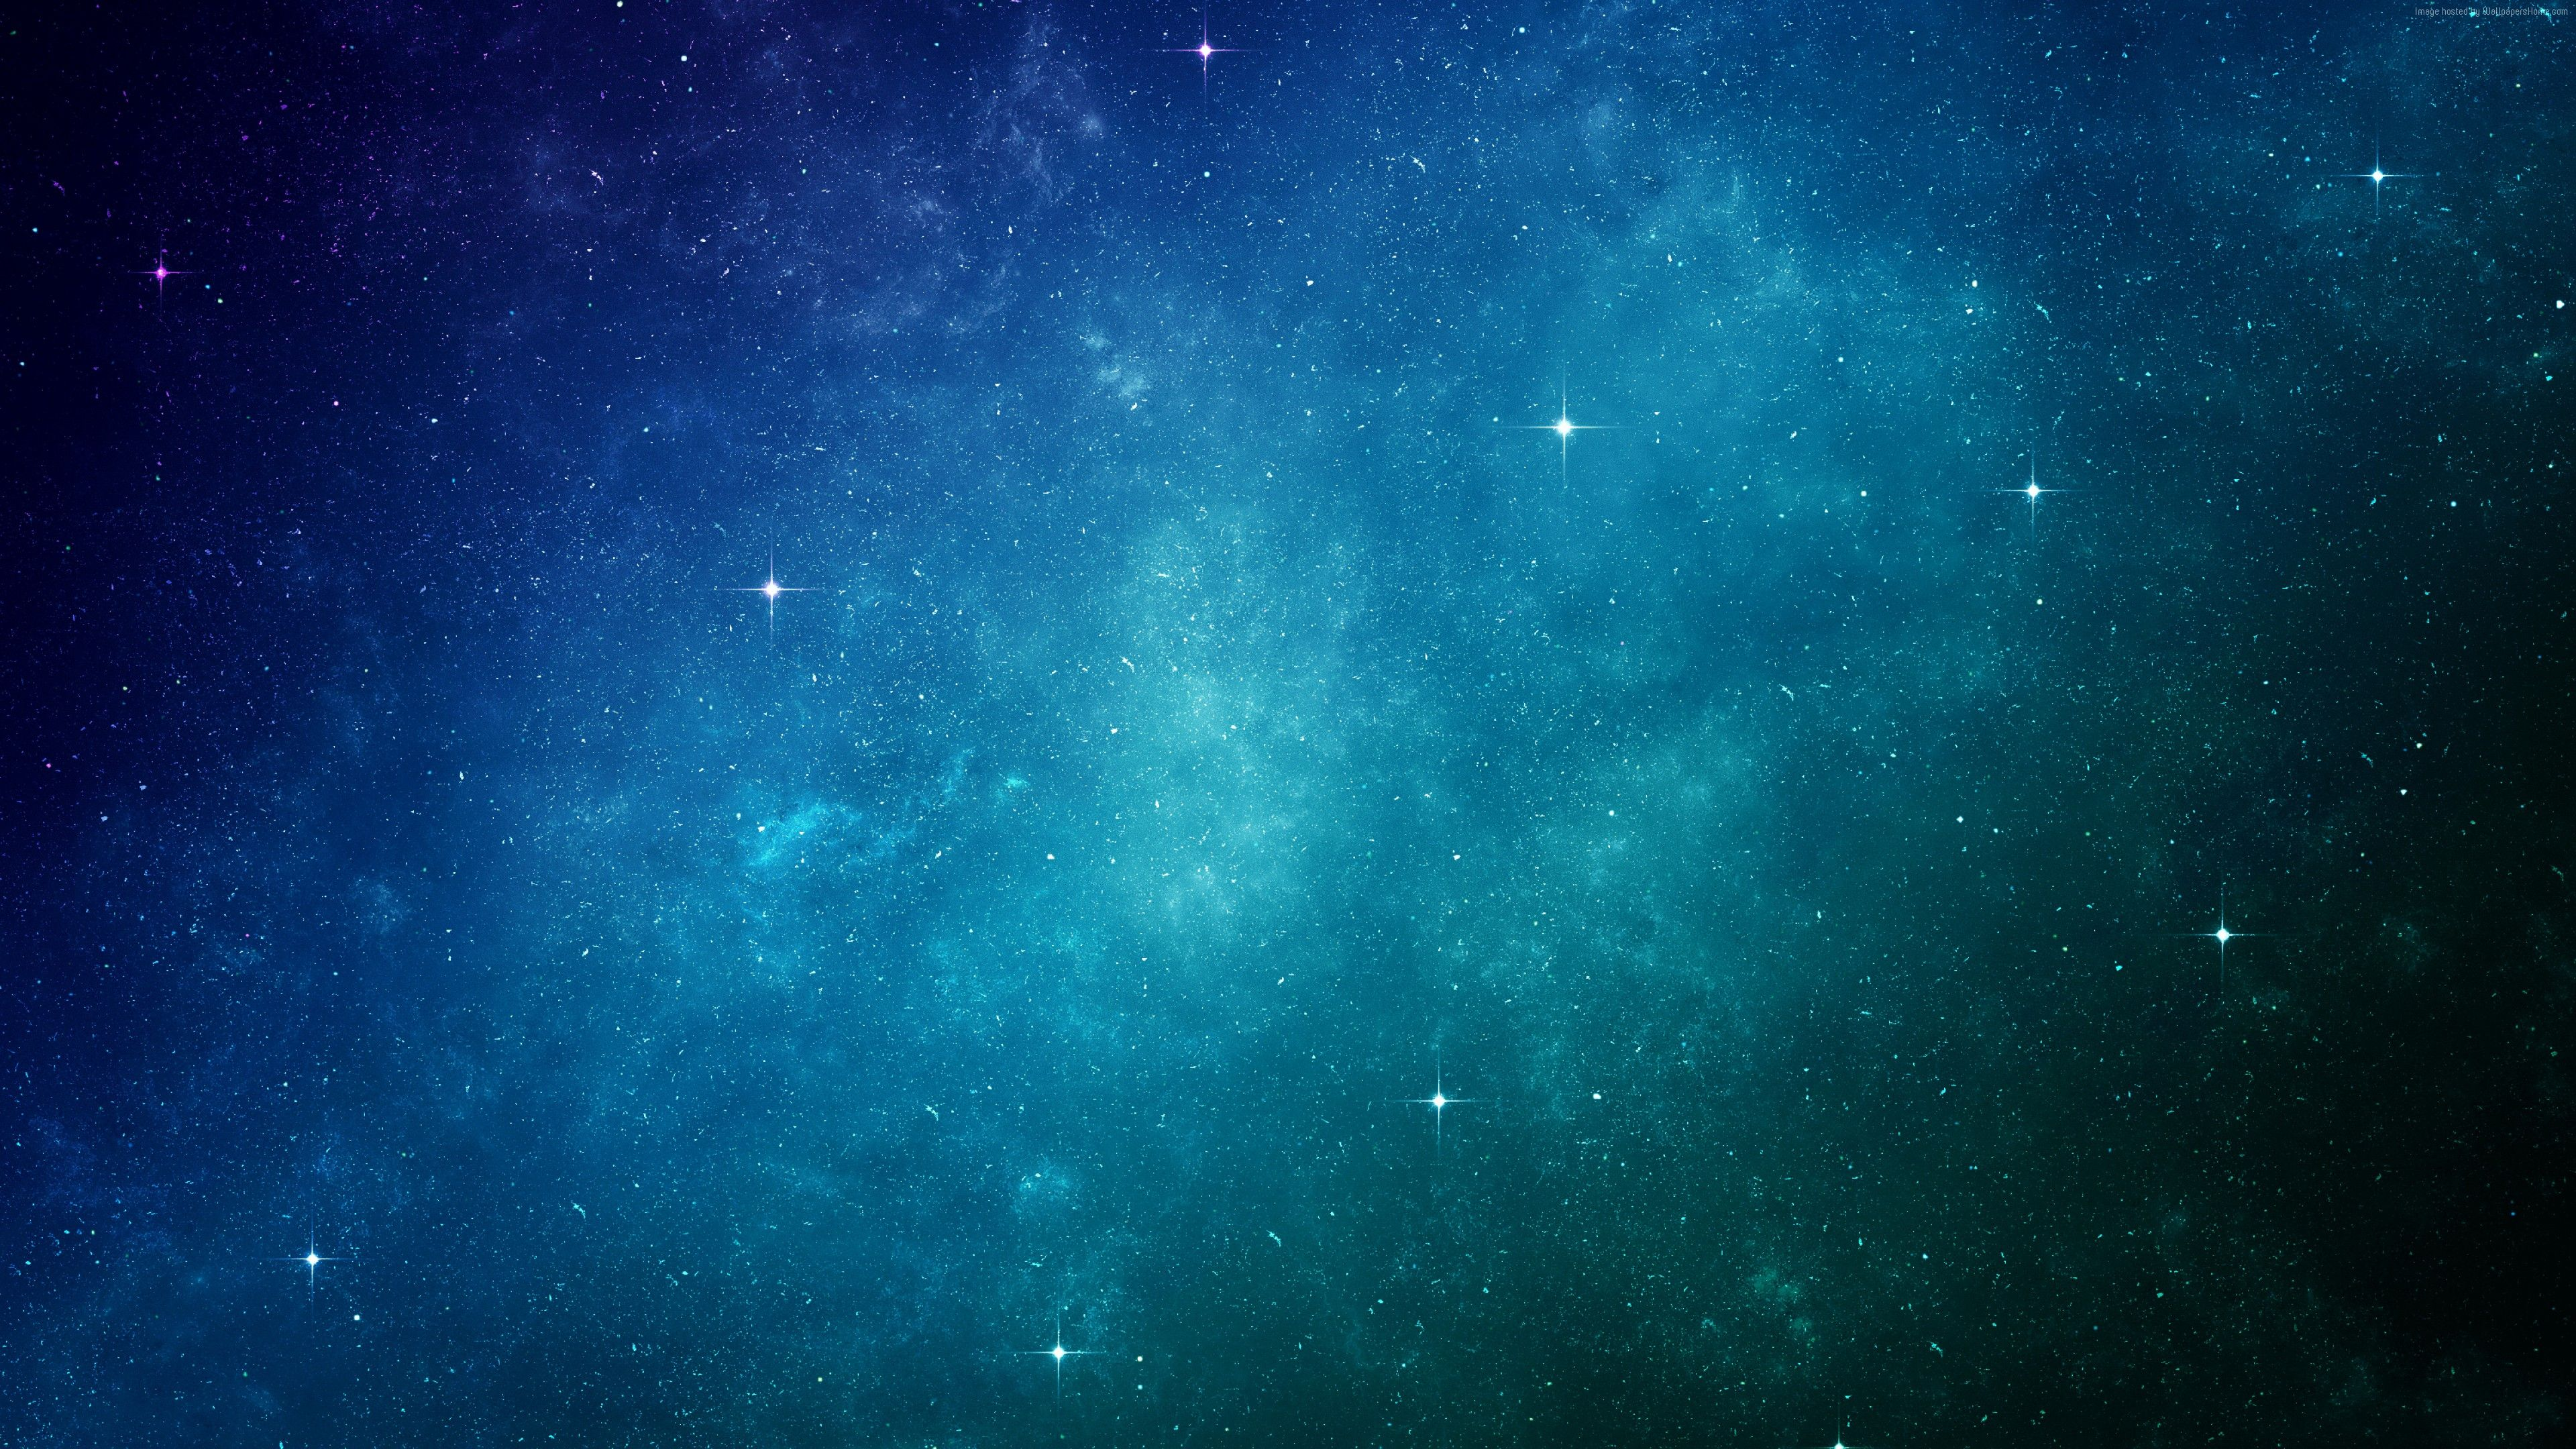 Wallpaper Milky Way Stars 4k Space Http Www Pxwall Com Wallpaper Milky Way Stars 4k Space Galaxy Background Milky Way Cute Wallpaper For Phone